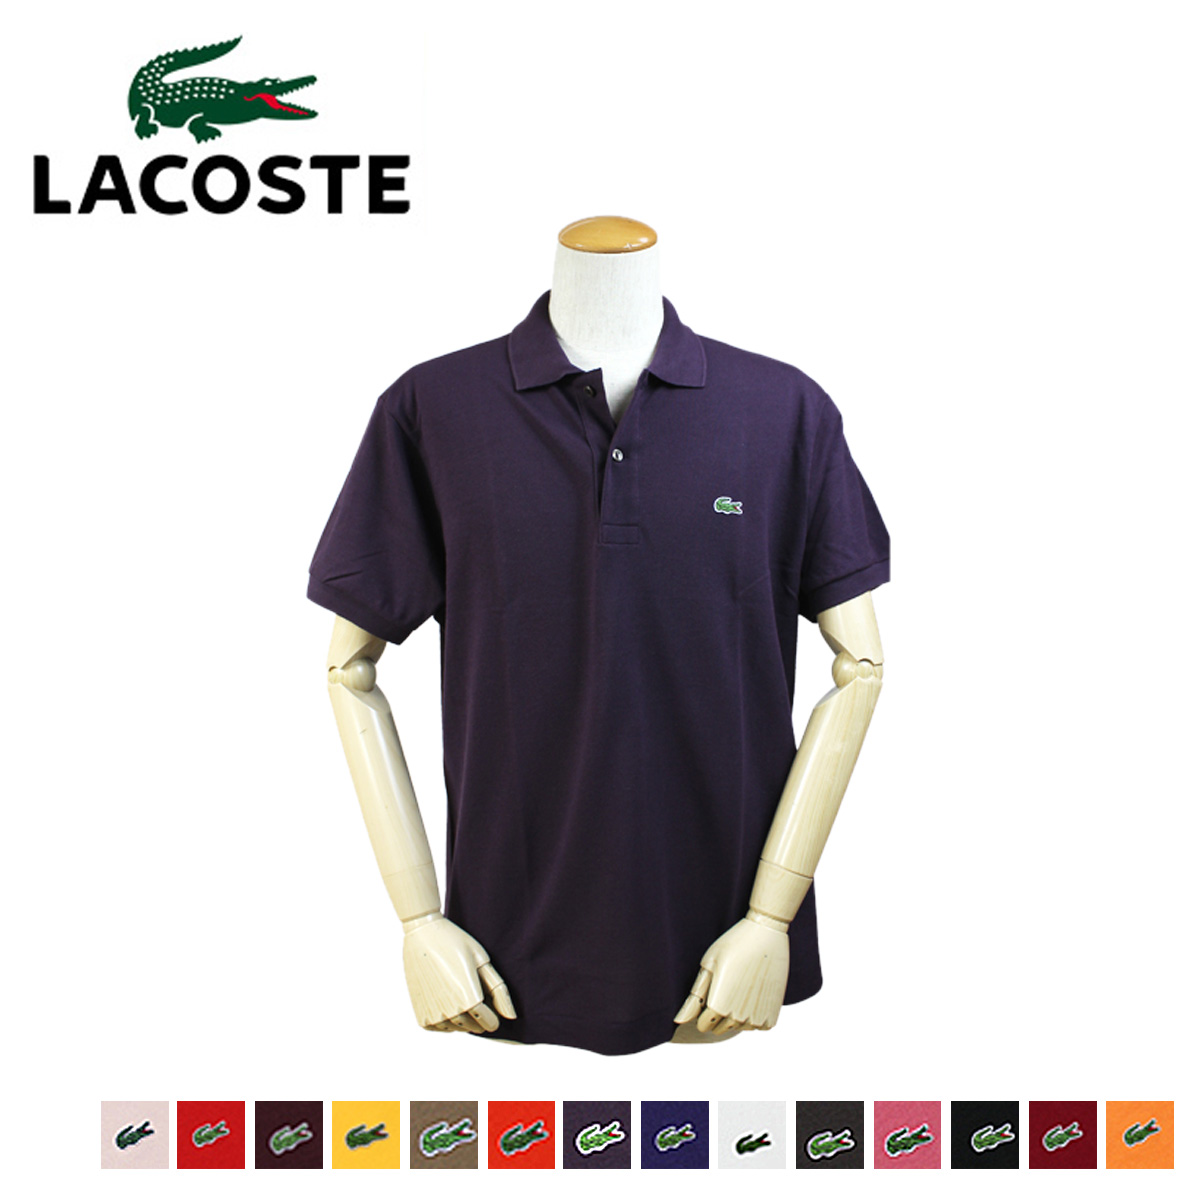 buy lacoste polo online